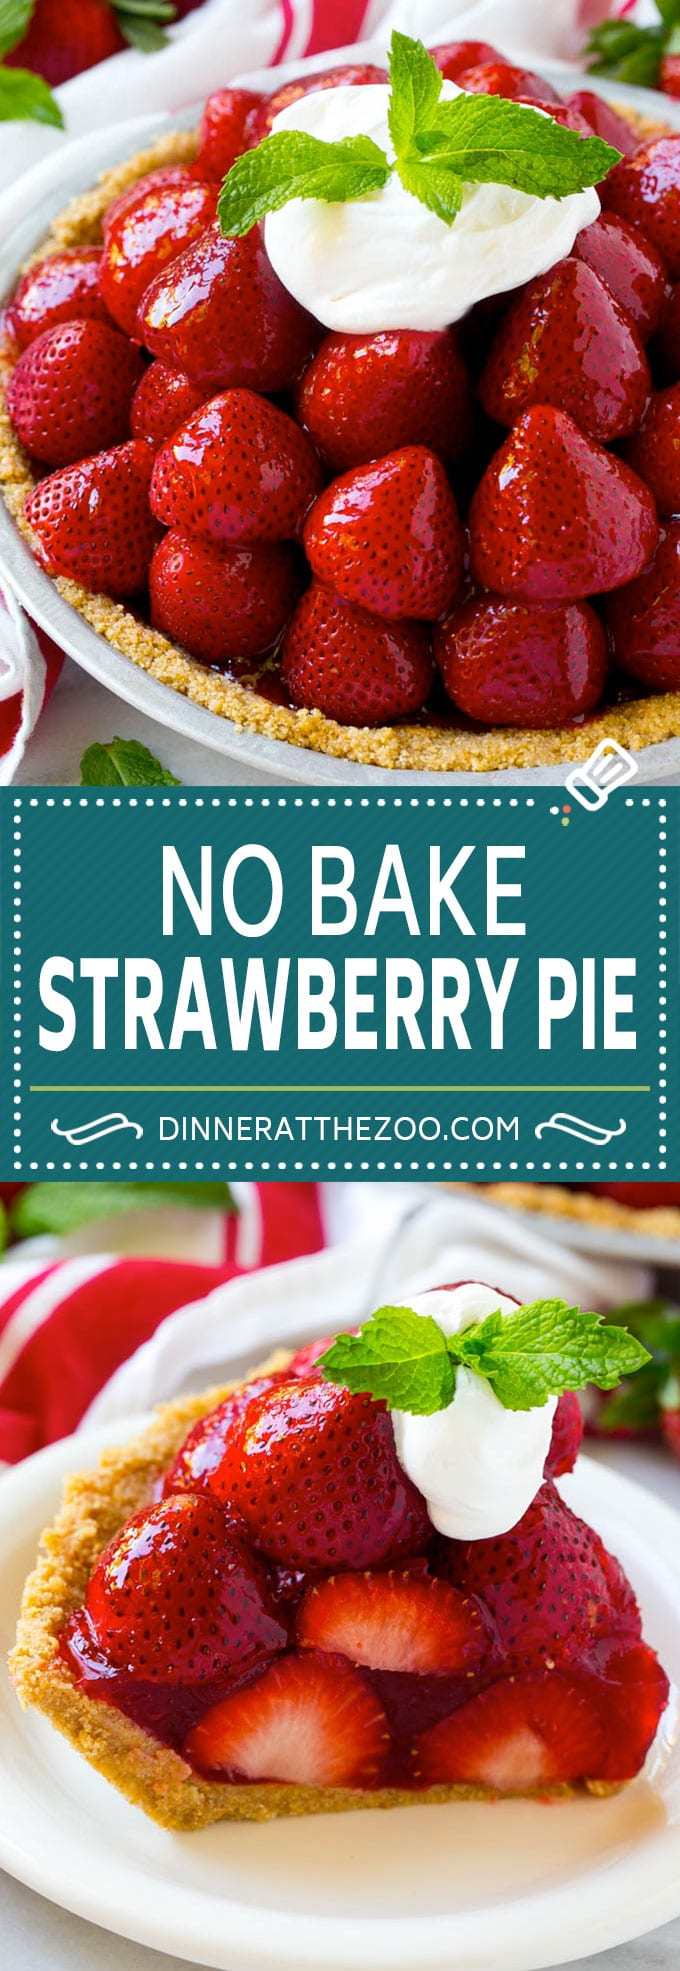 No Bake Strawberry Pie Recipe | Fresh Strawberry Pie | Strawberry Pie Recipe | No Bake Pie Recipe #strawberry #strawberrypie #nobake #nobakepie #dessert #dinneratthezoo #strawberrypie